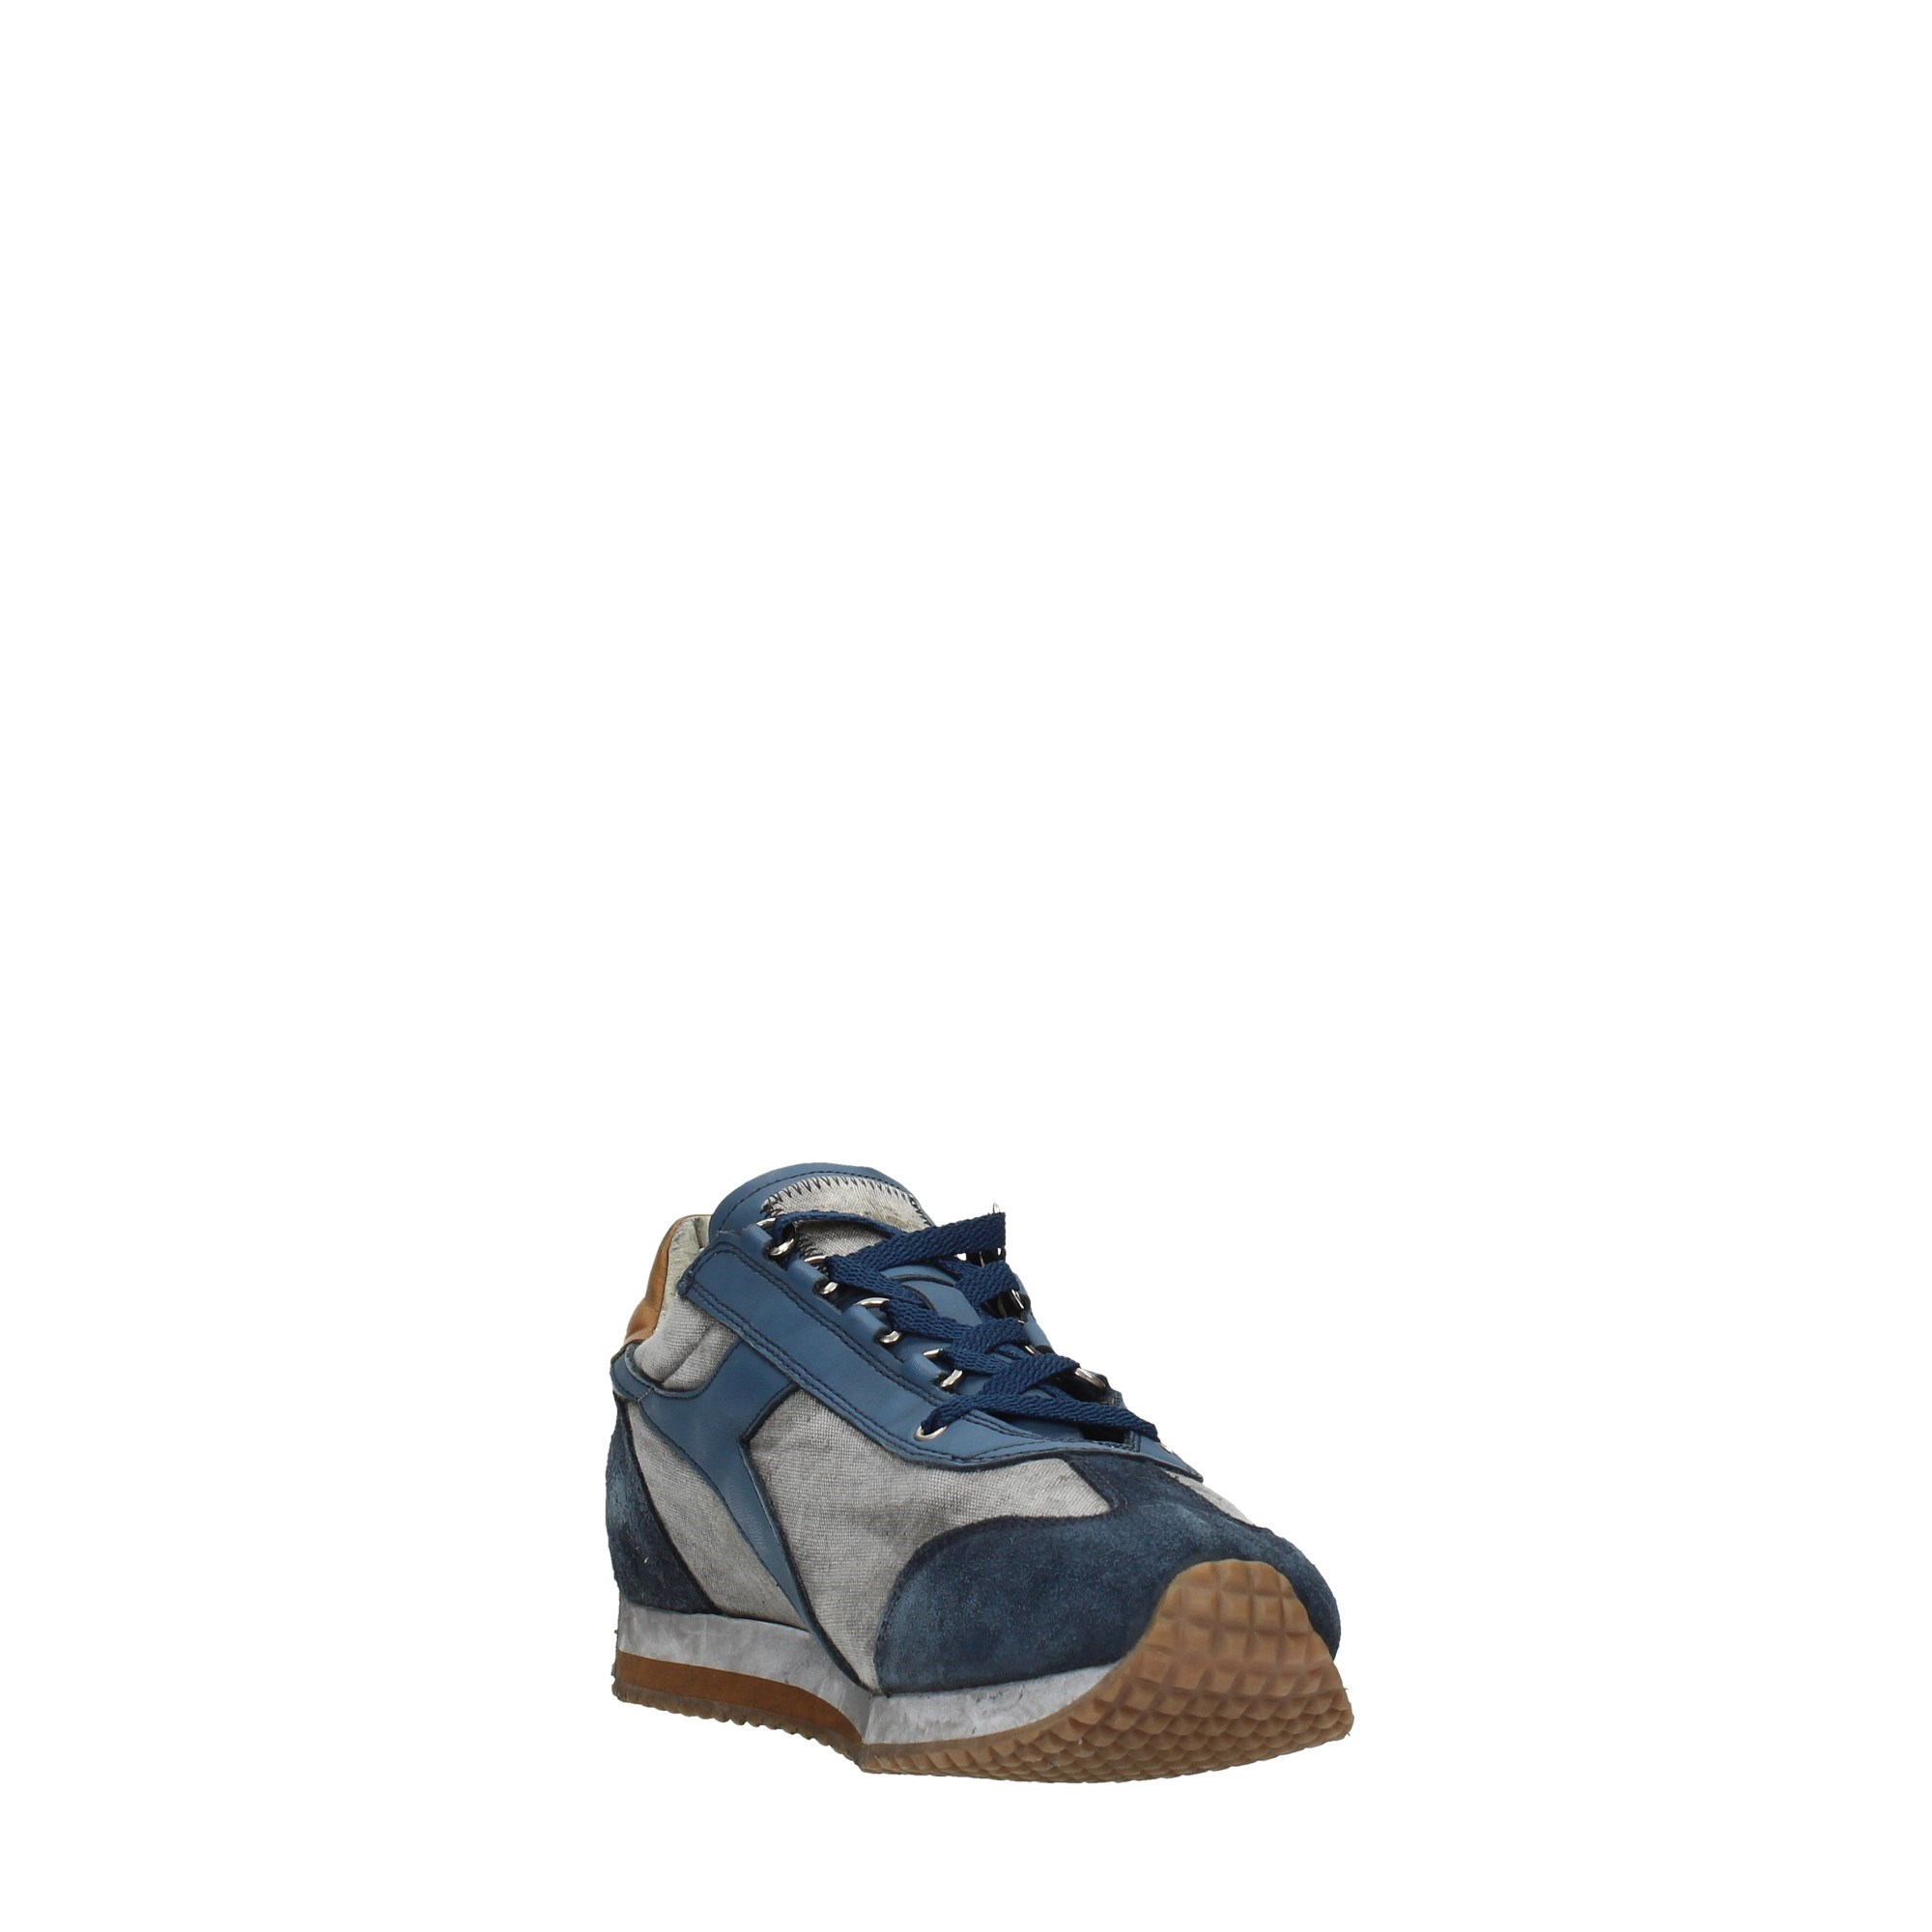 Diadora Heritage Shoes Man Sneakers Blue 201.174736